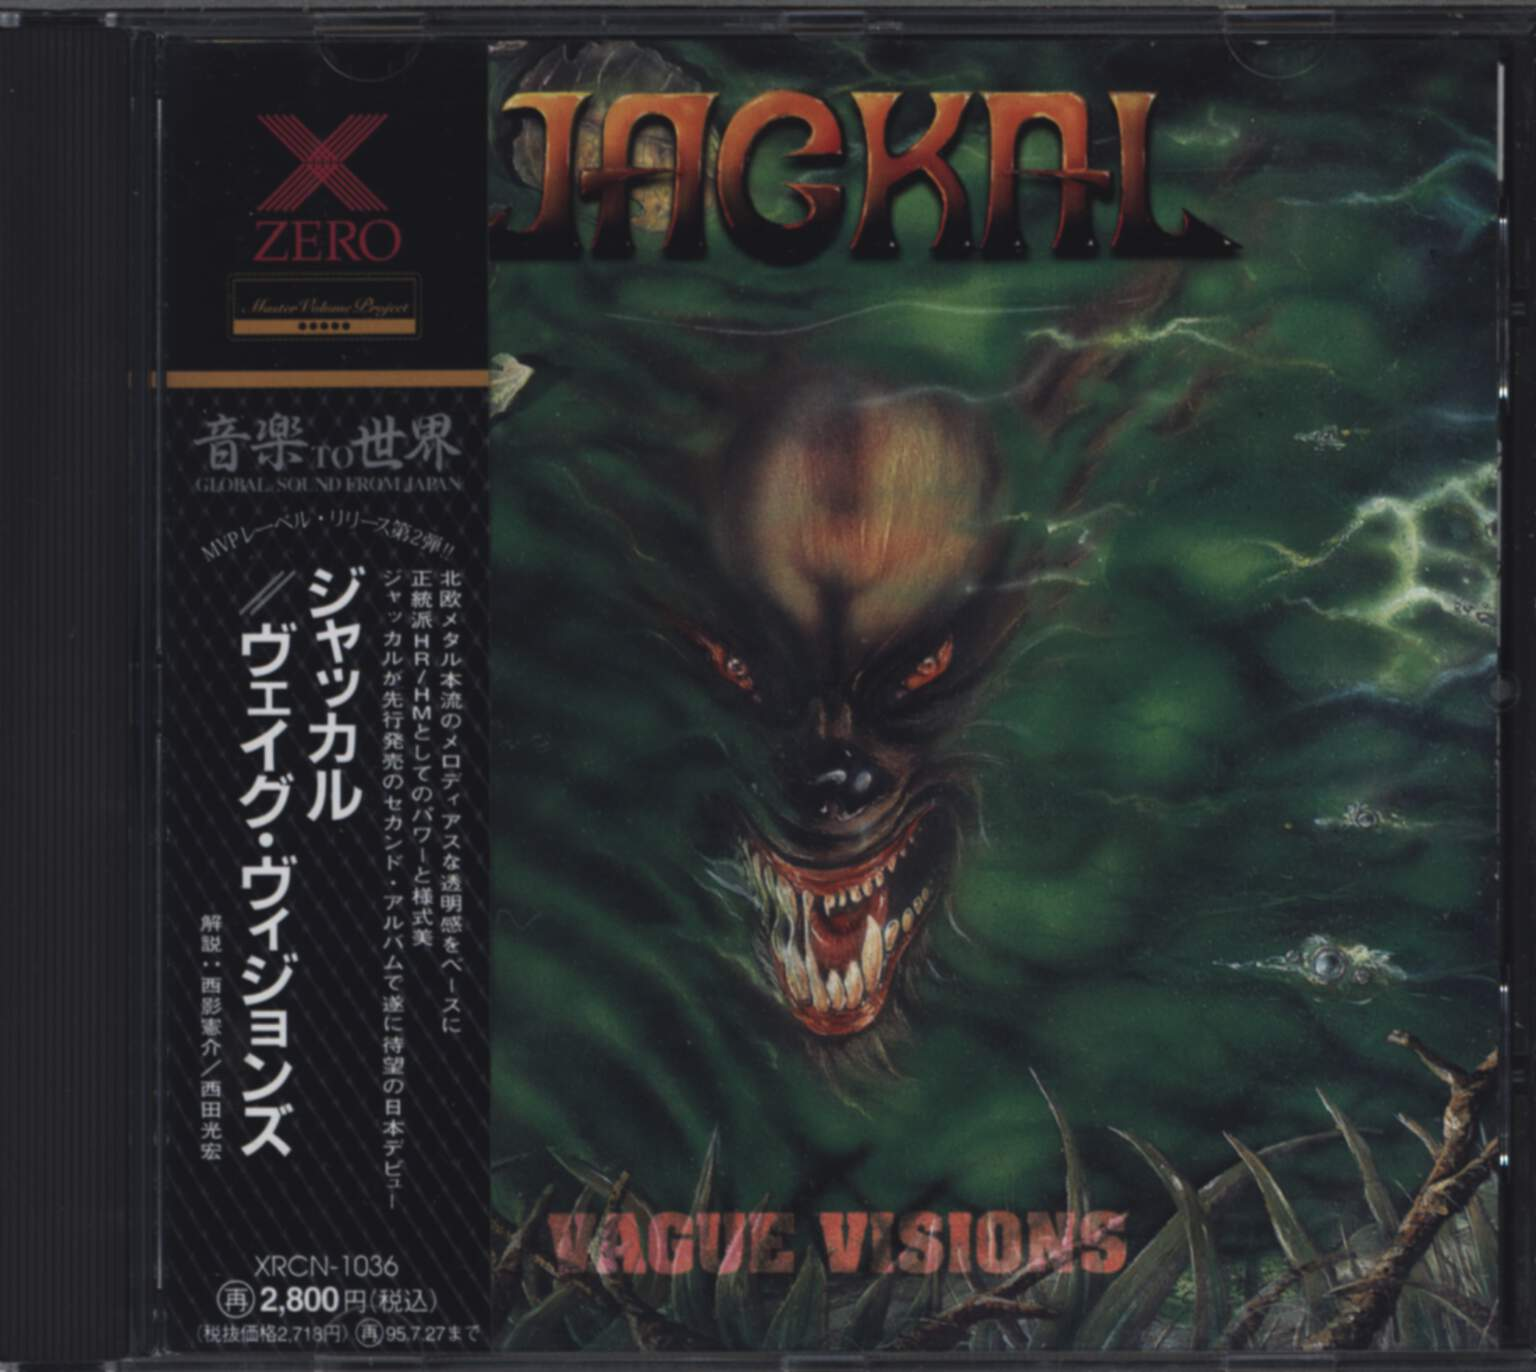 Jackal: Vague Visions, CD